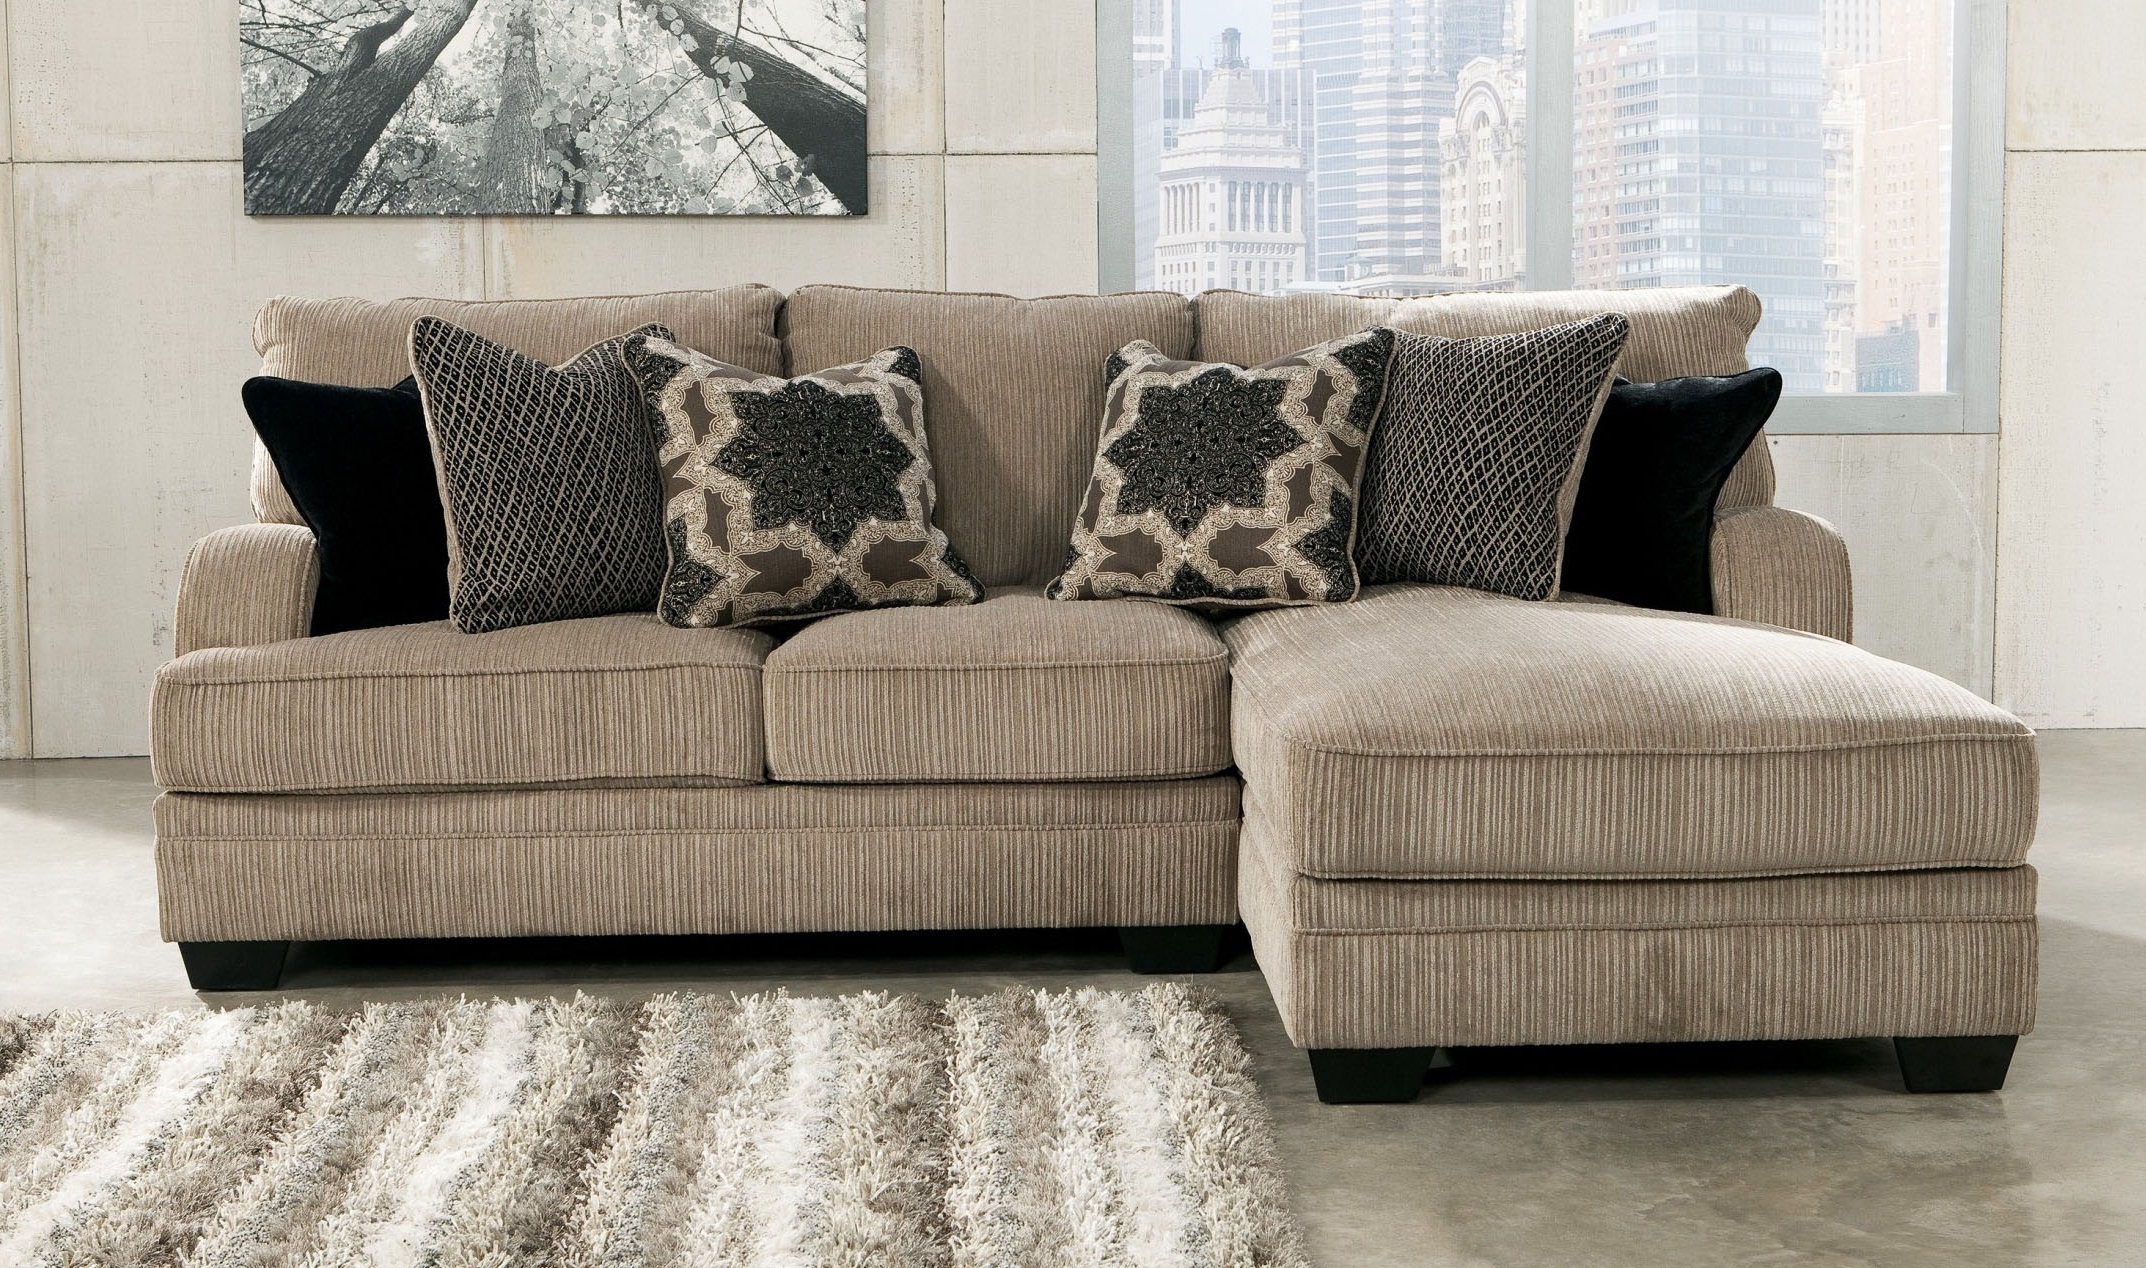 Favorite Small Sectional Furniture For The Best Looks Of Your House With Sectional Sofas For Small Places (View 6 of 15)